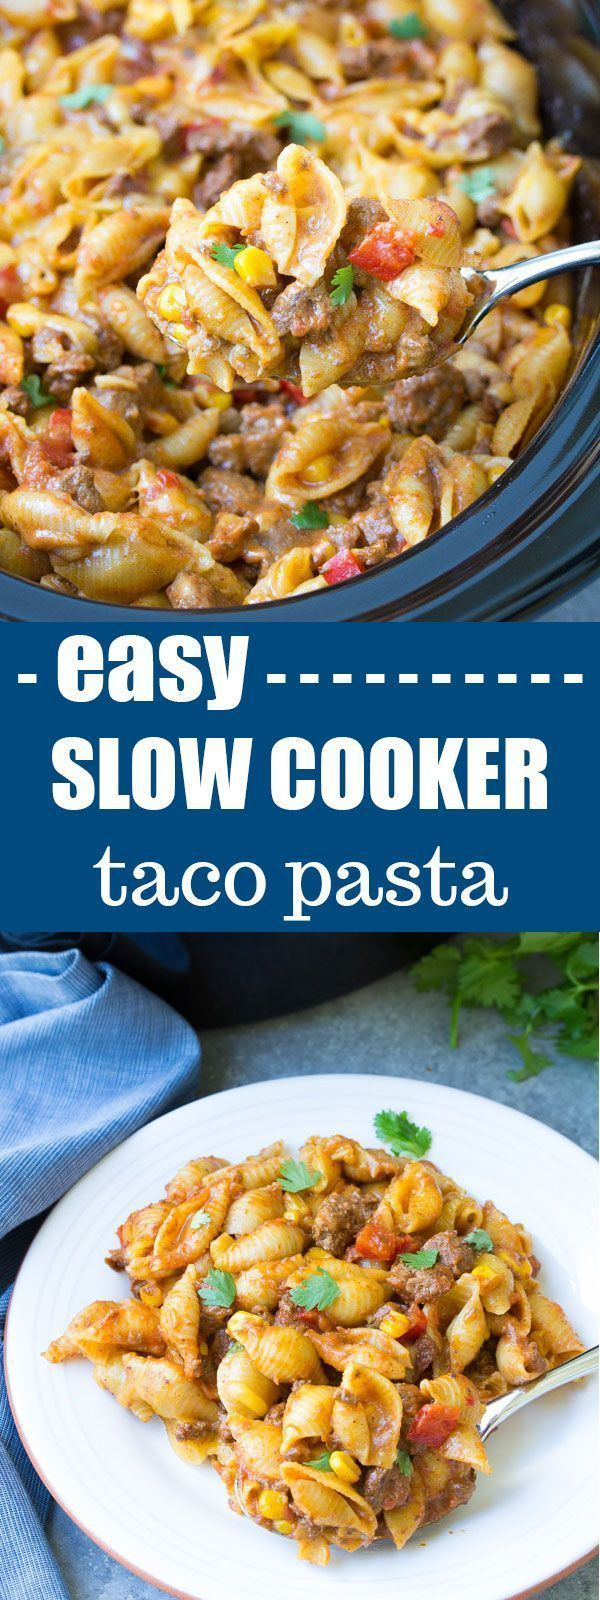 Easy Slow Cooker Taco Pasta